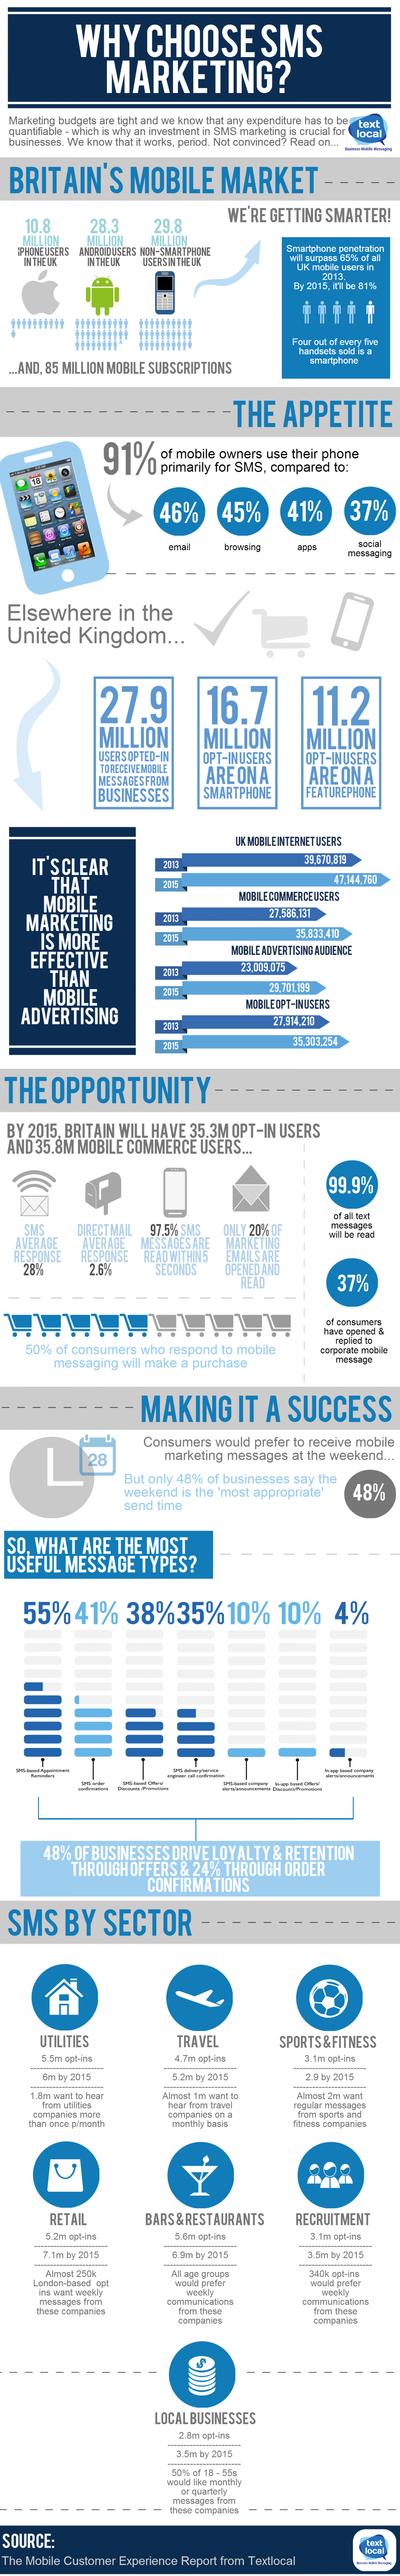 Why choose SMS marketing? Infographic